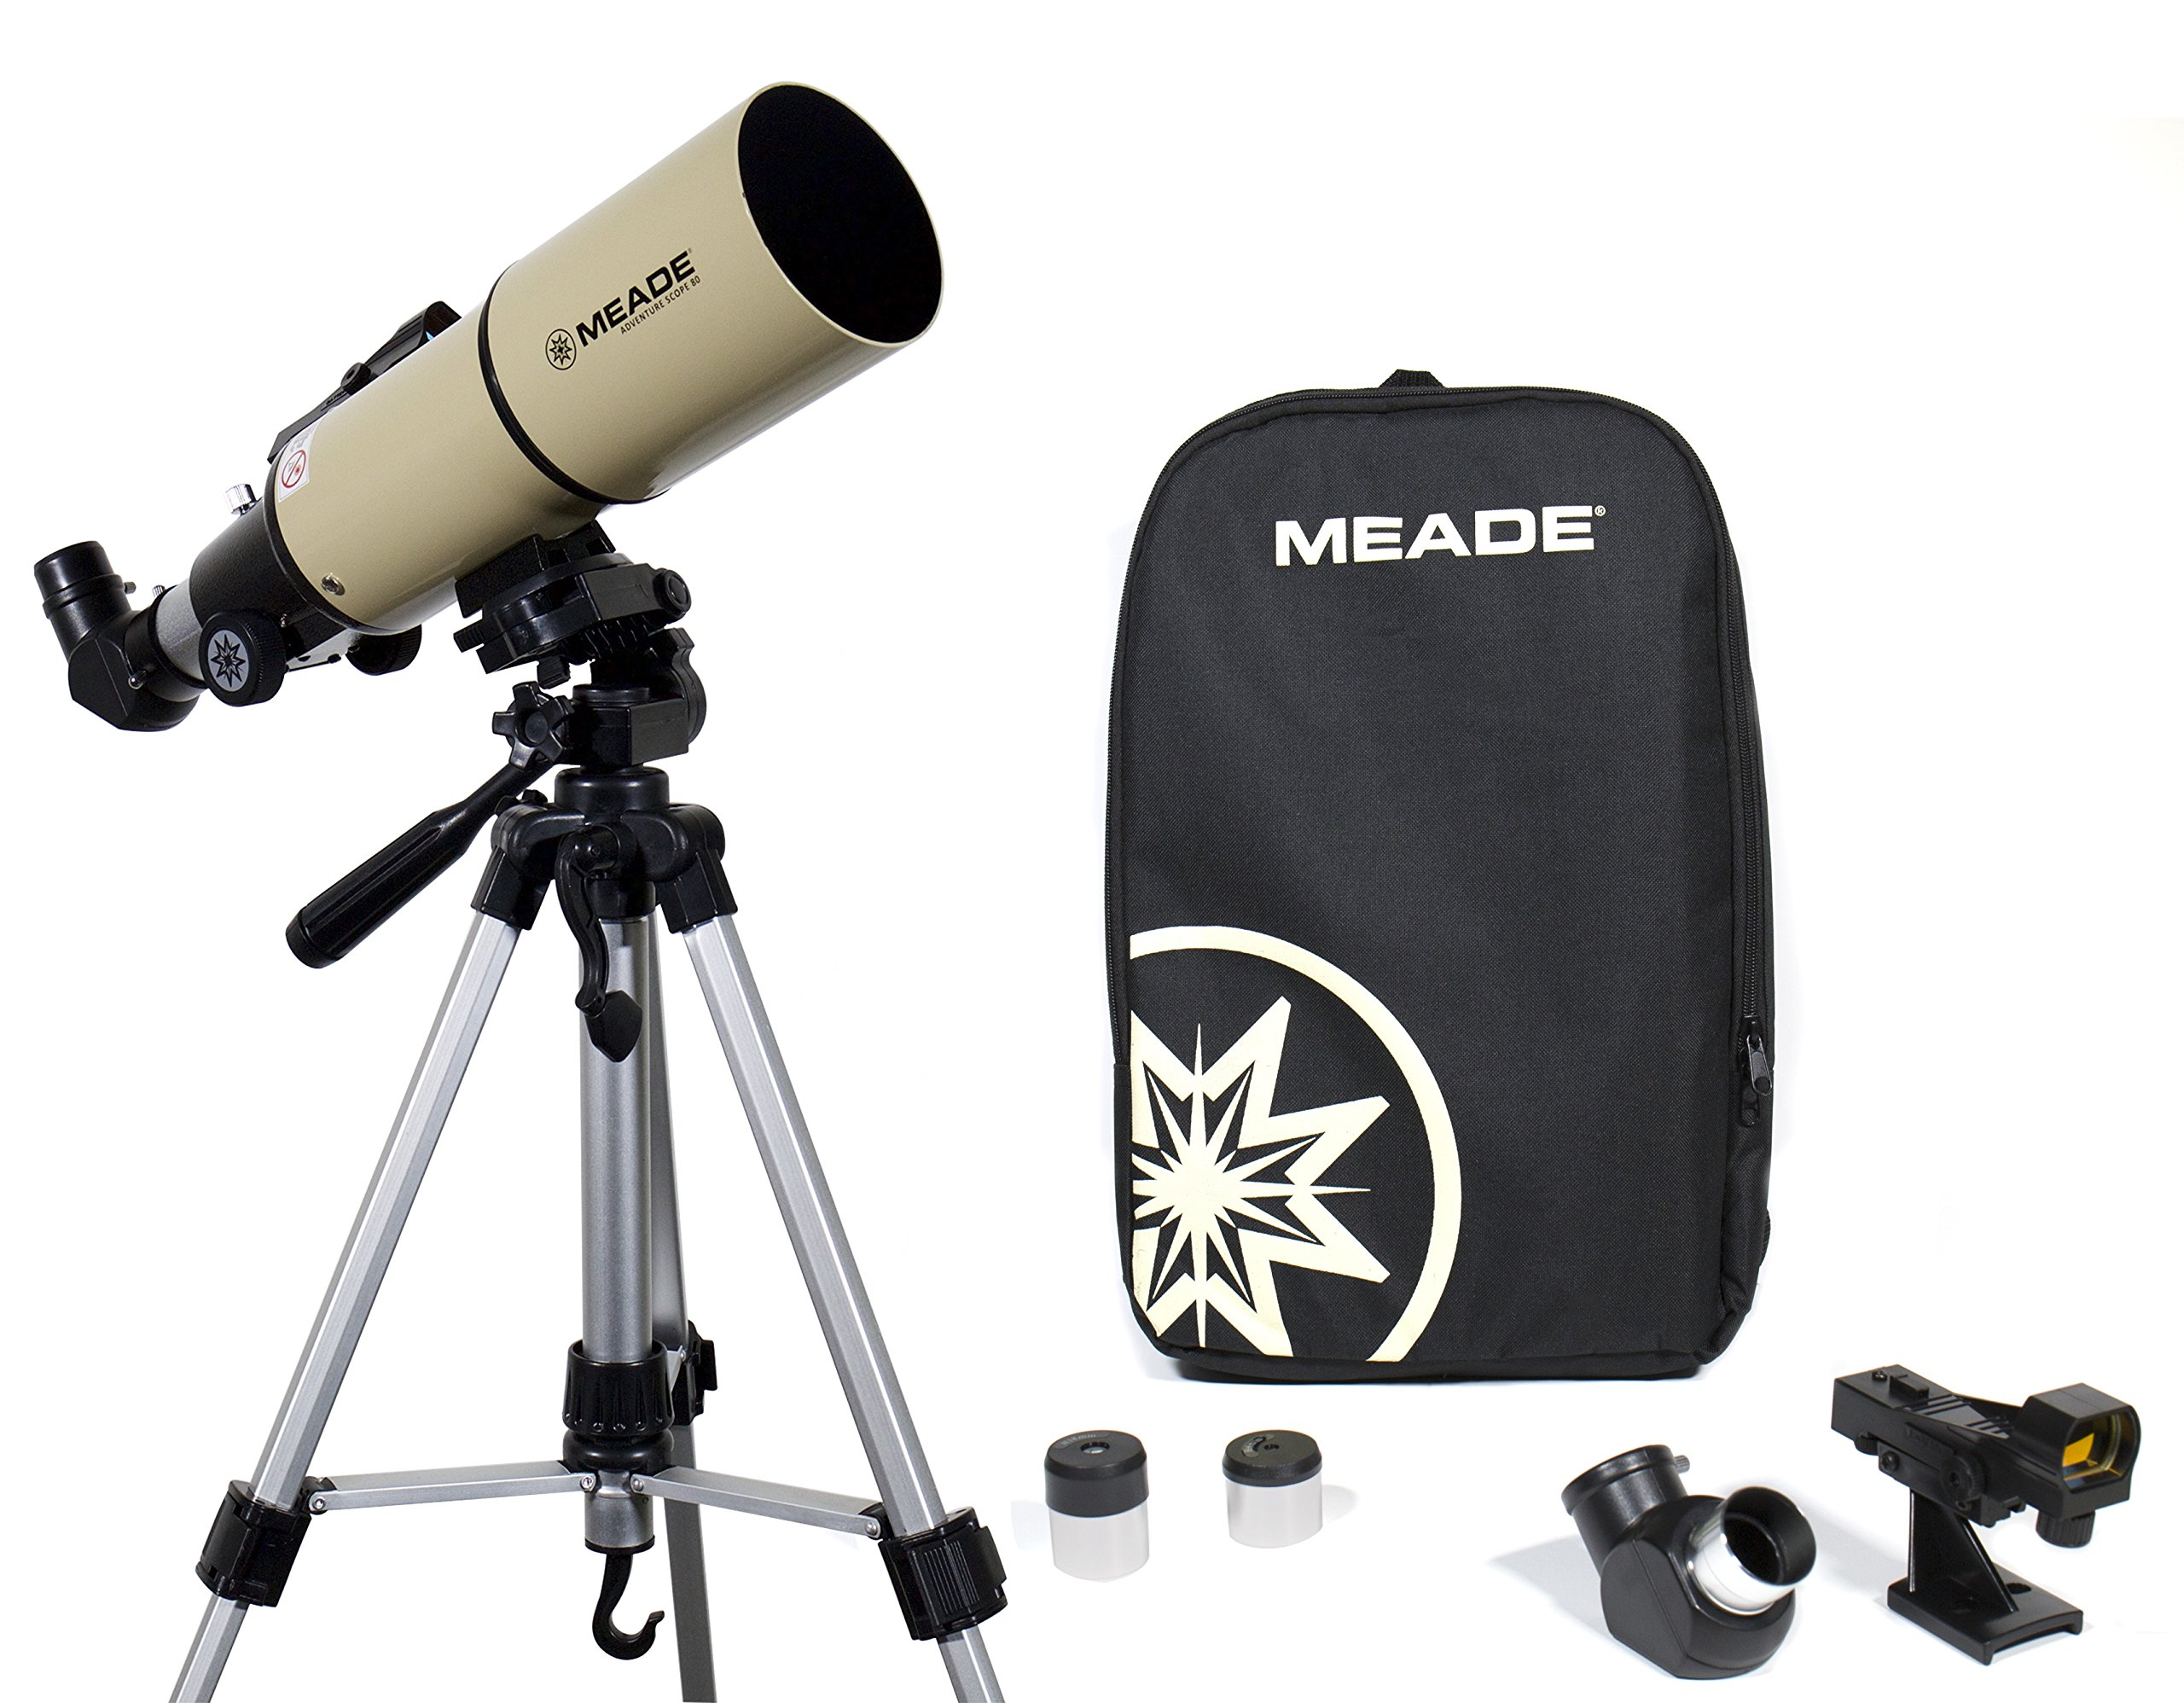 Meade Instruments 222001 80mm Adventure Scope by Meade Instruments